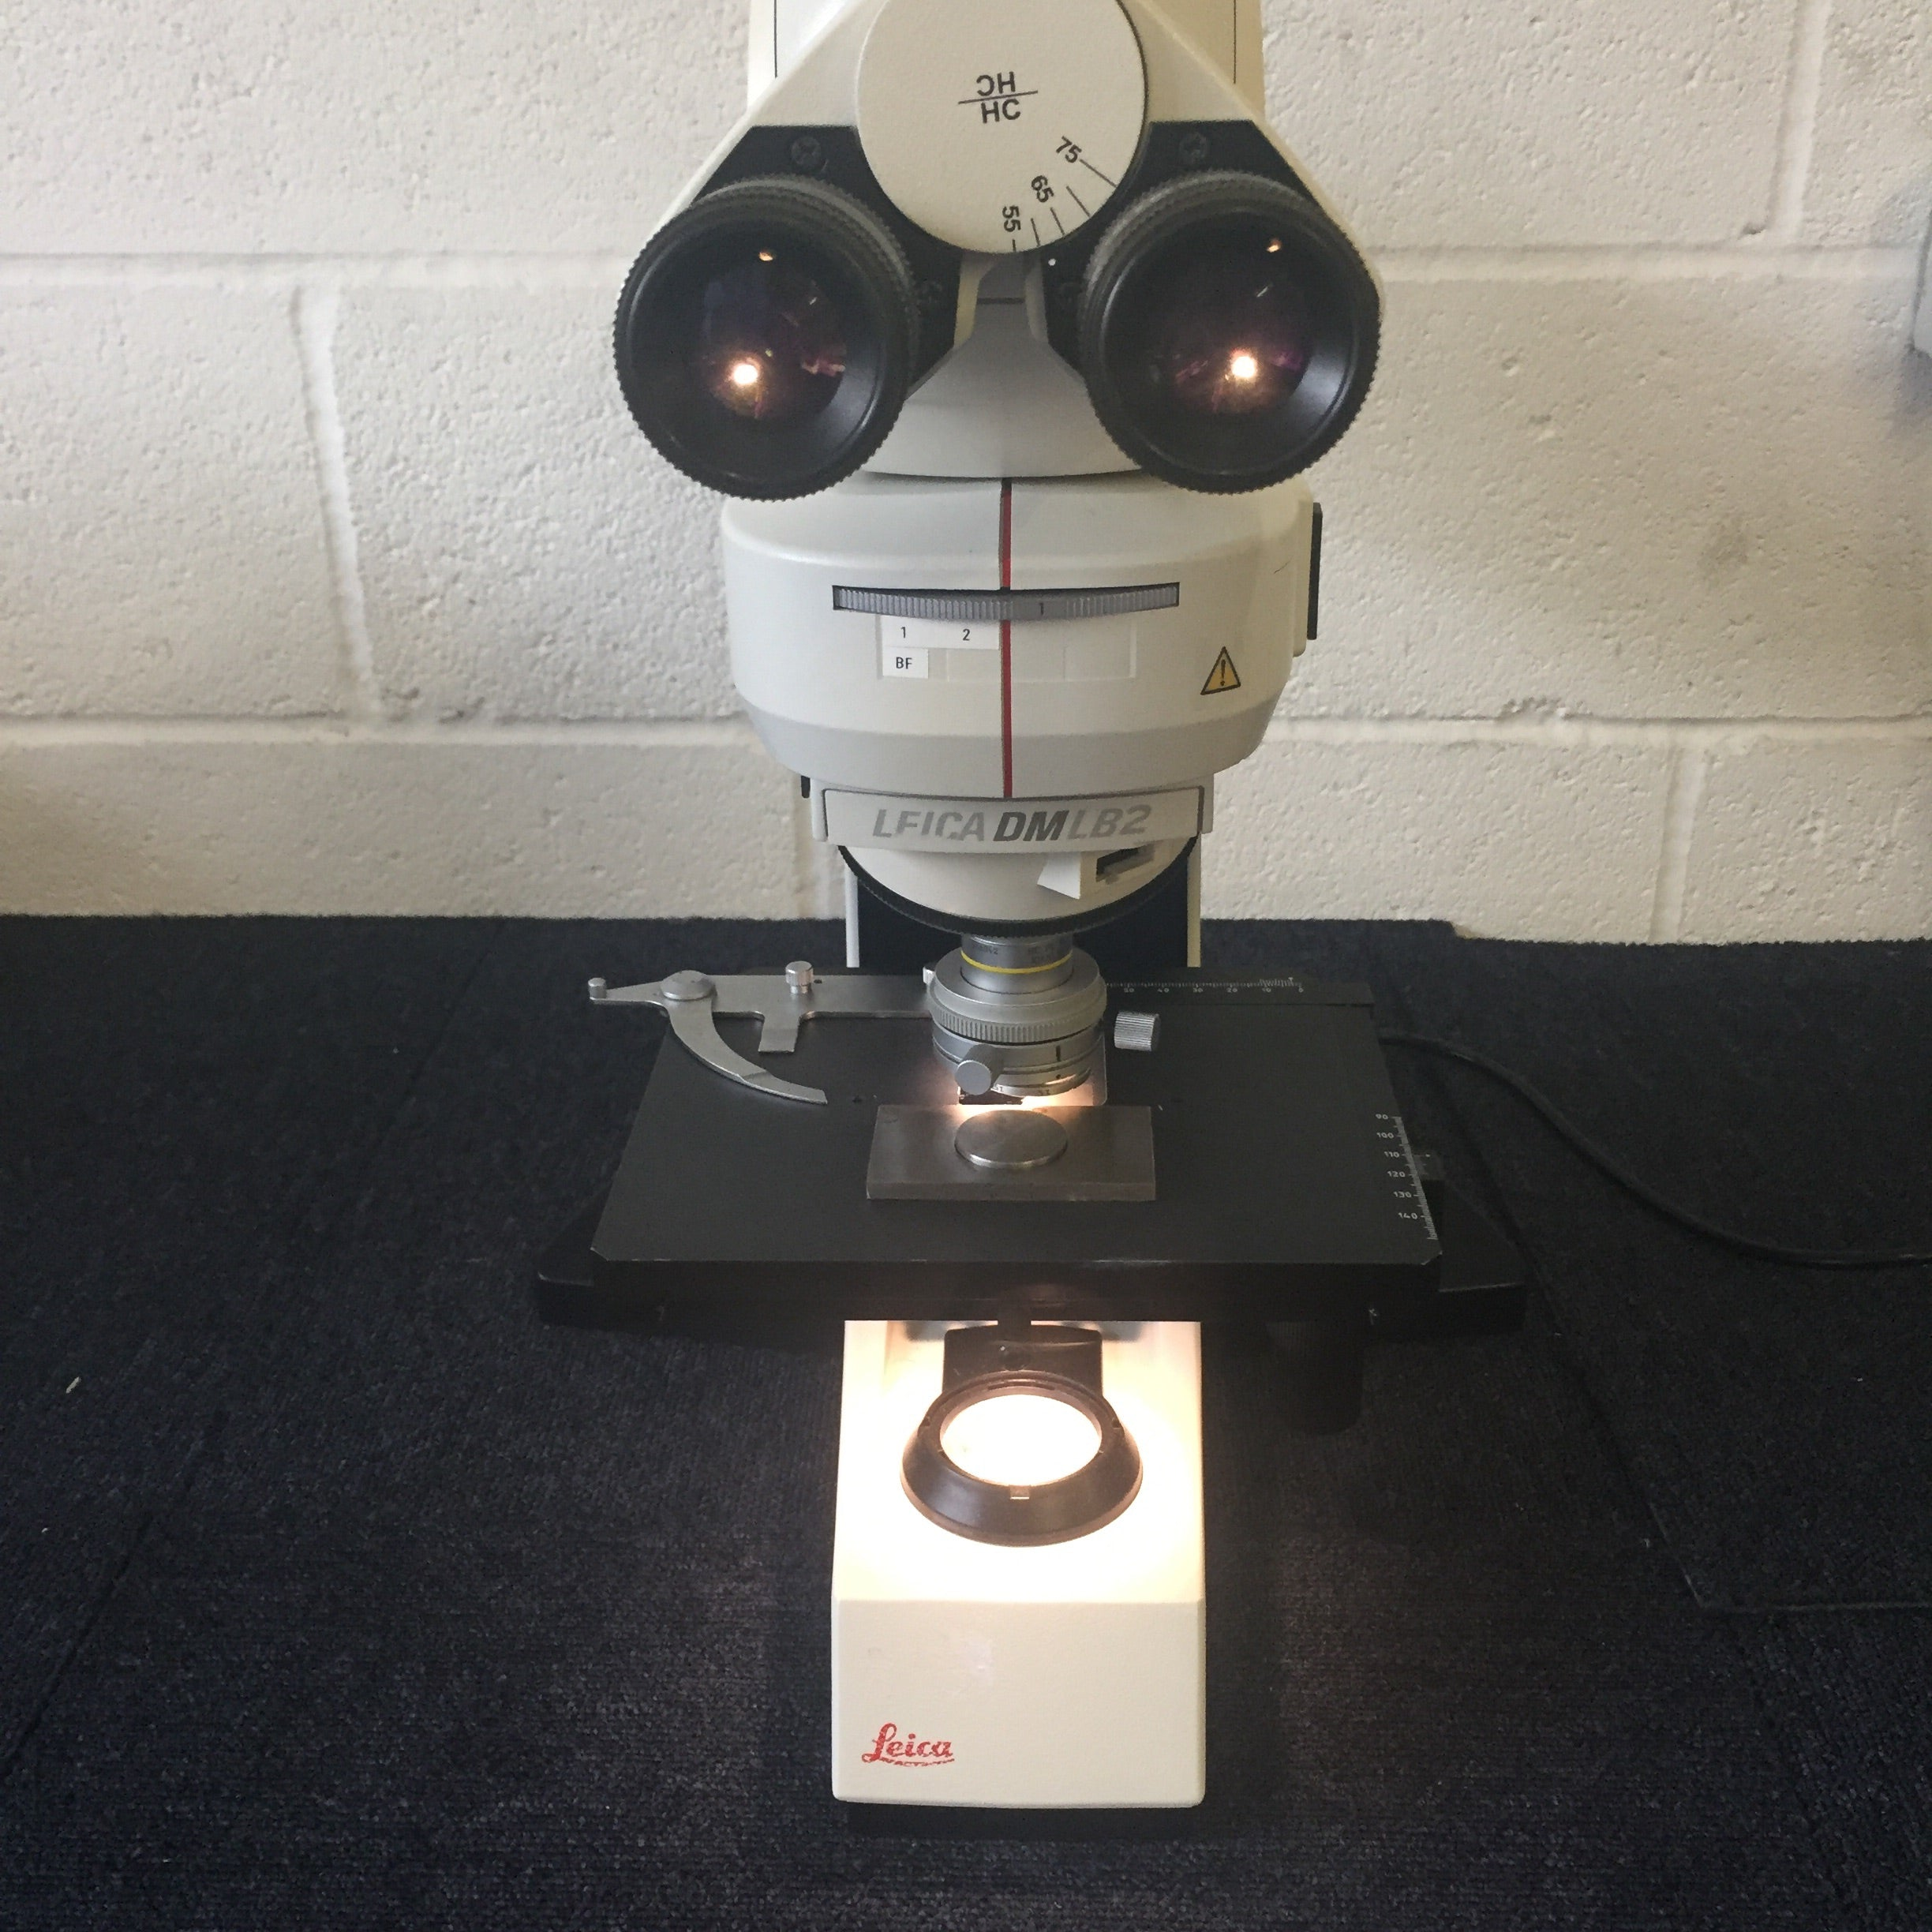 LEICA DM LB2 Microscope (Transmittance and Incidence light illumination)